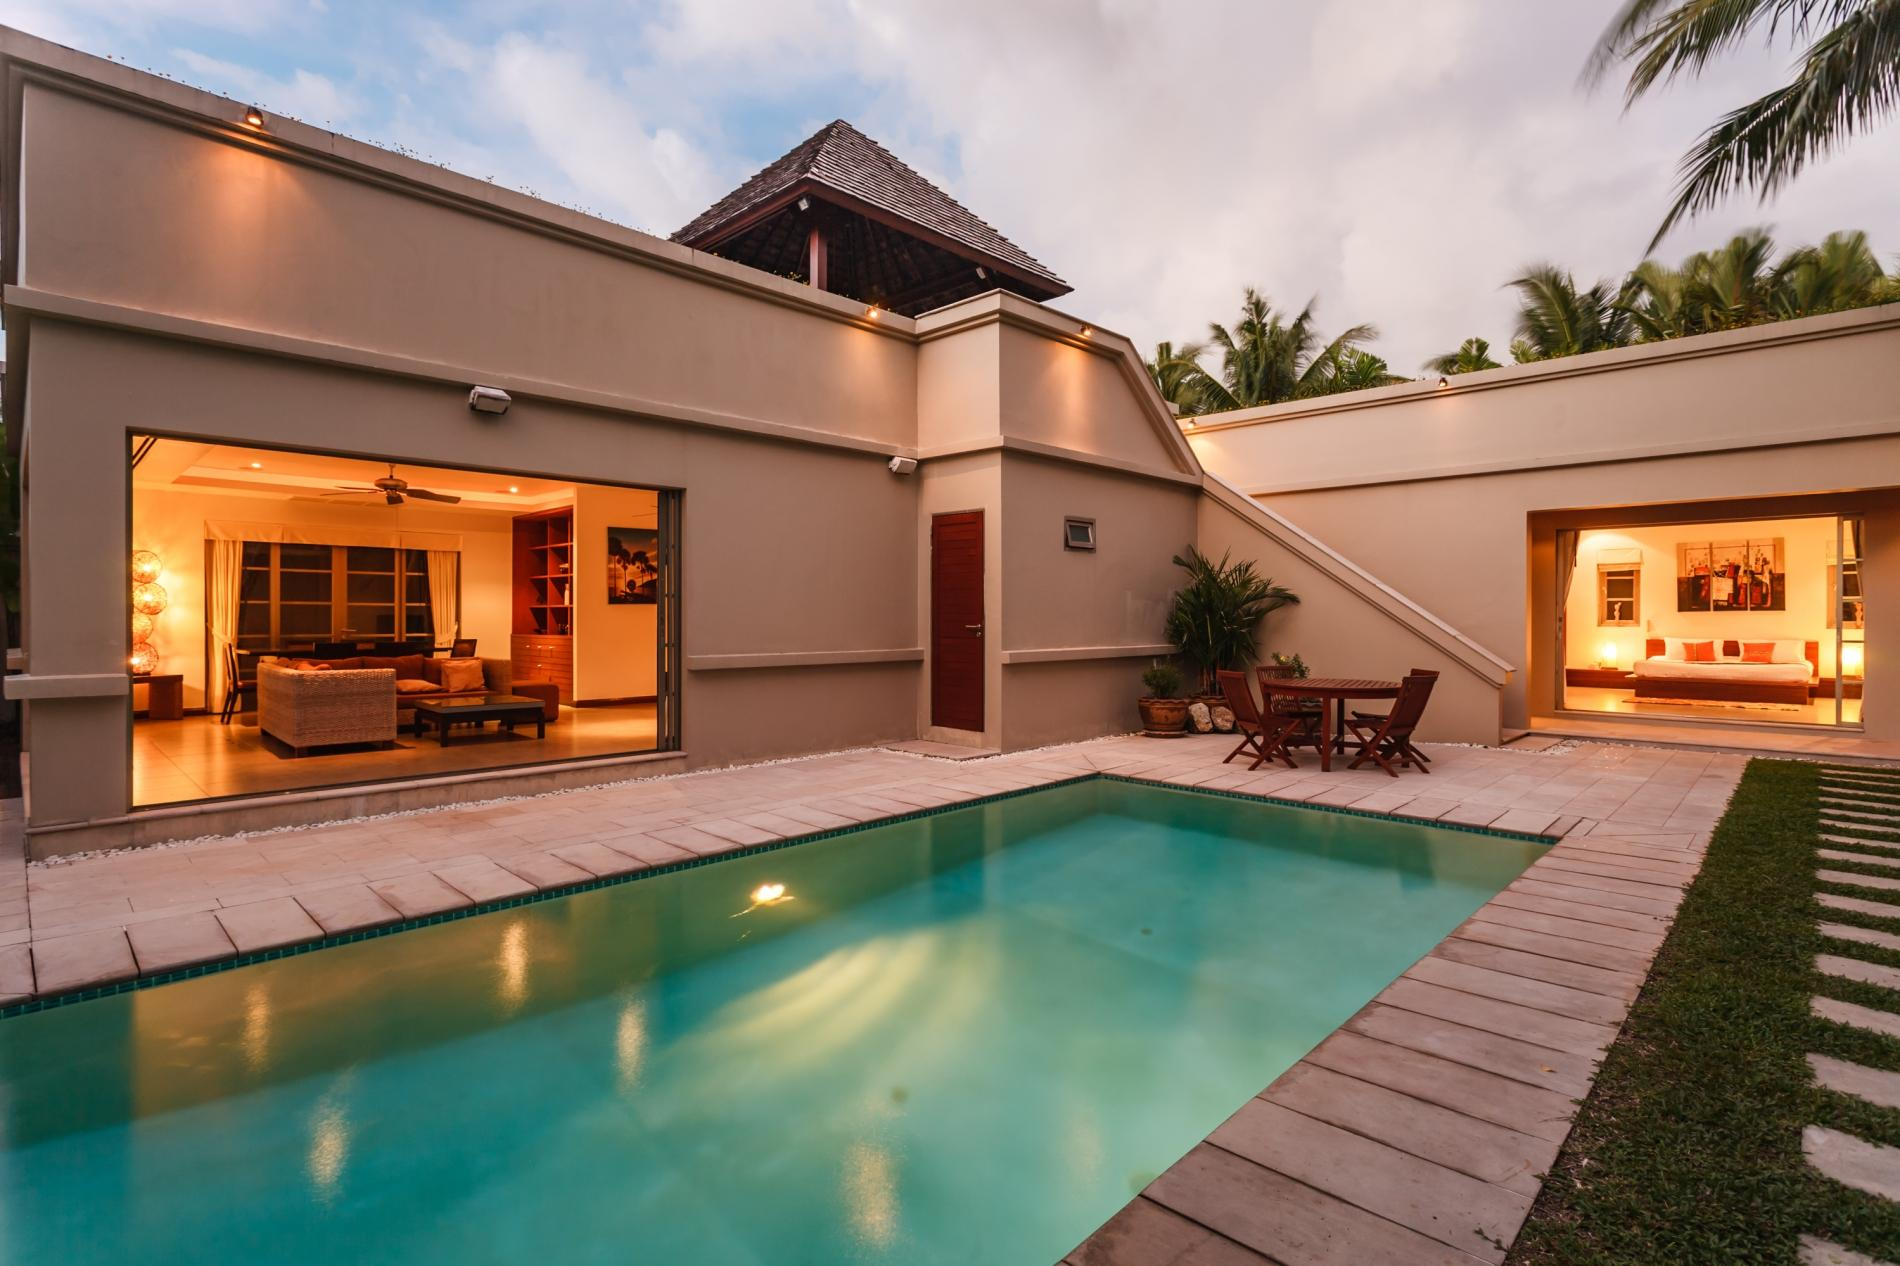 TR111 - Private pool villa in Bang Tao Residence - 3 bedrooms photo 5733842